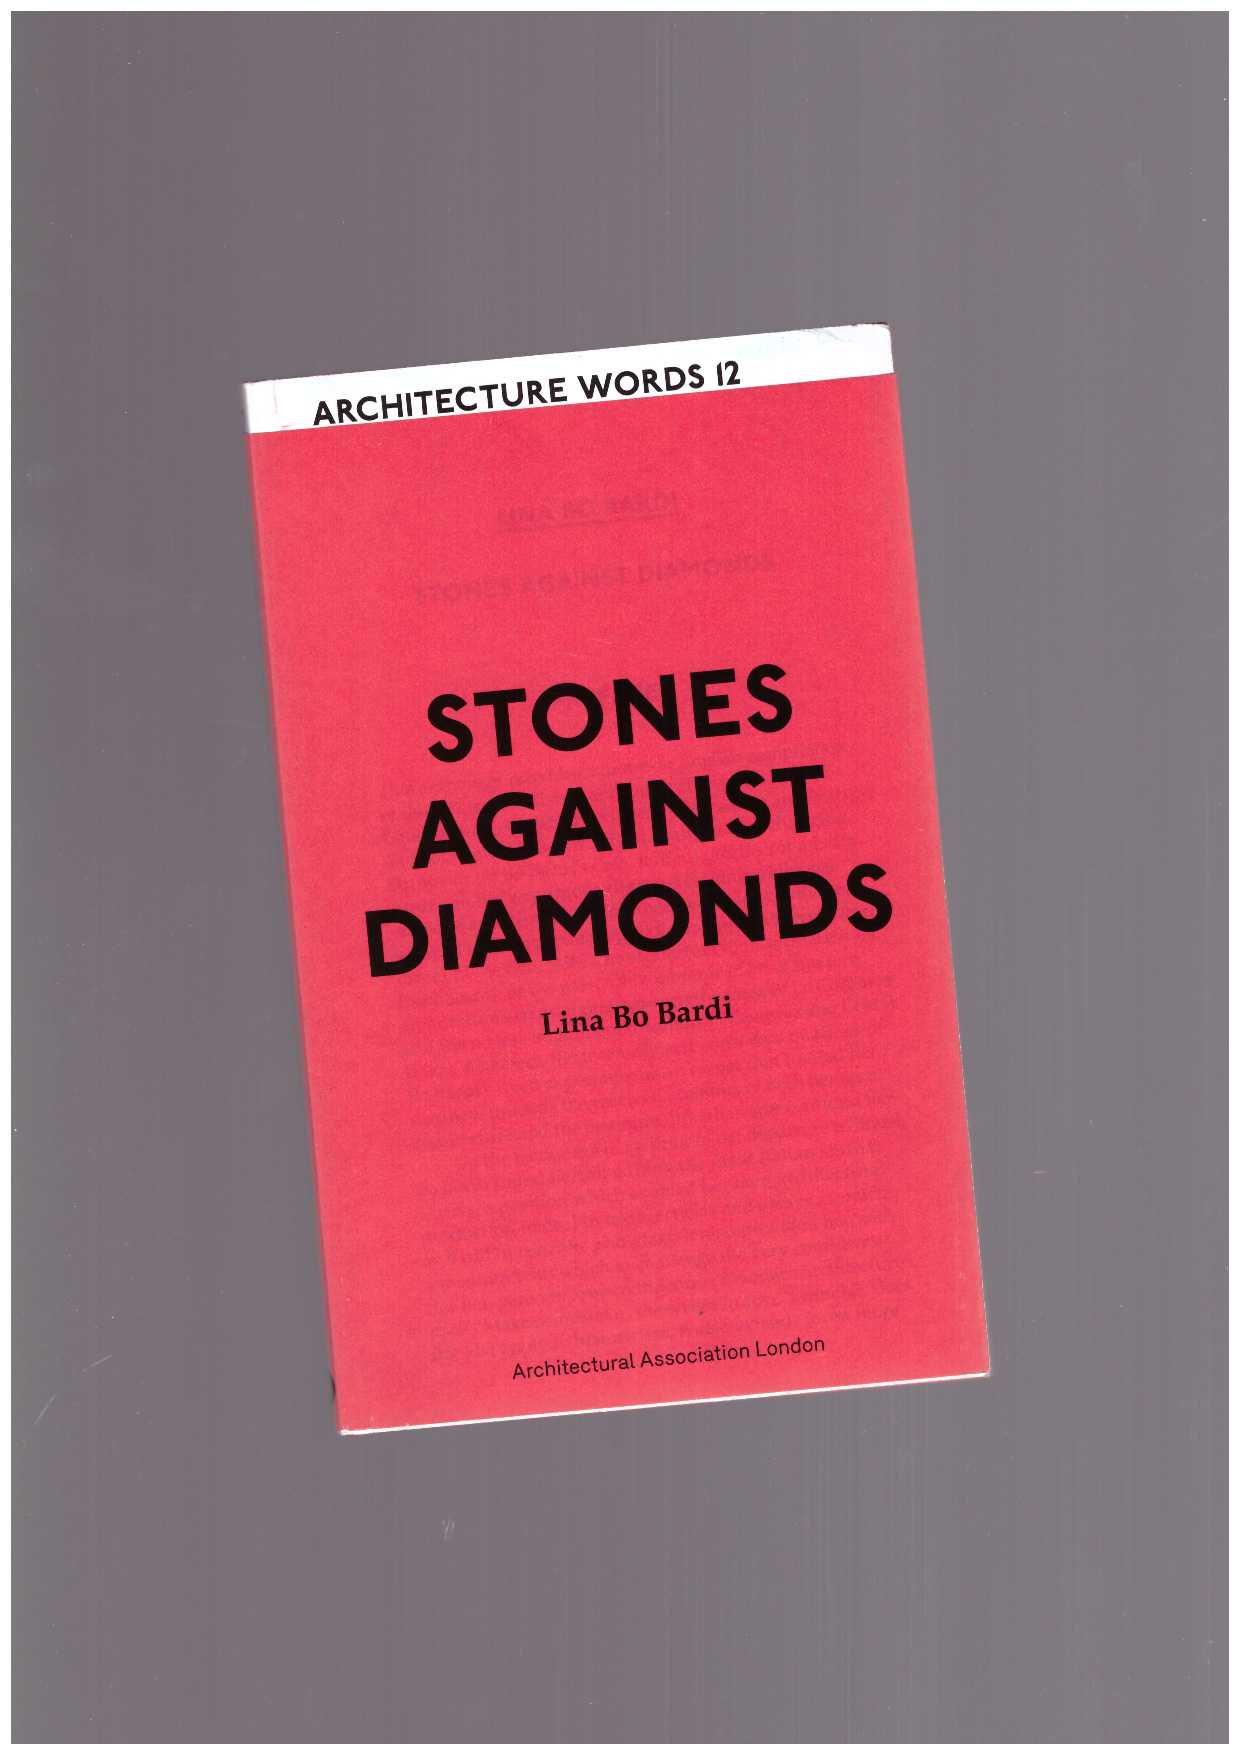 BO BARDI, Lina - Stones against diamonds